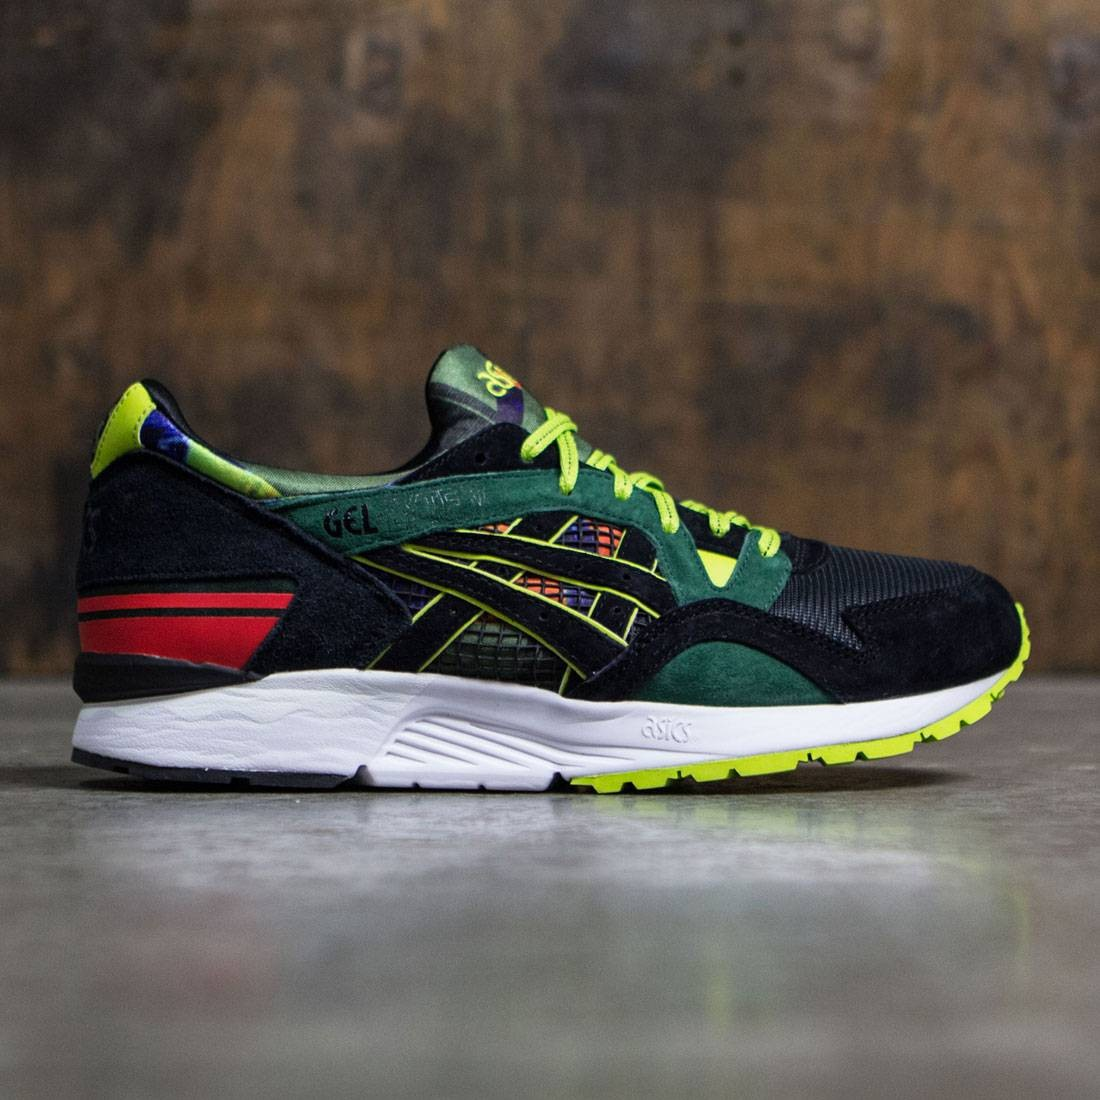 new arrival 624de 1477c Asics x Mita x Whiz Limited Men Gel-Lyte V - Recognize (black   green ...